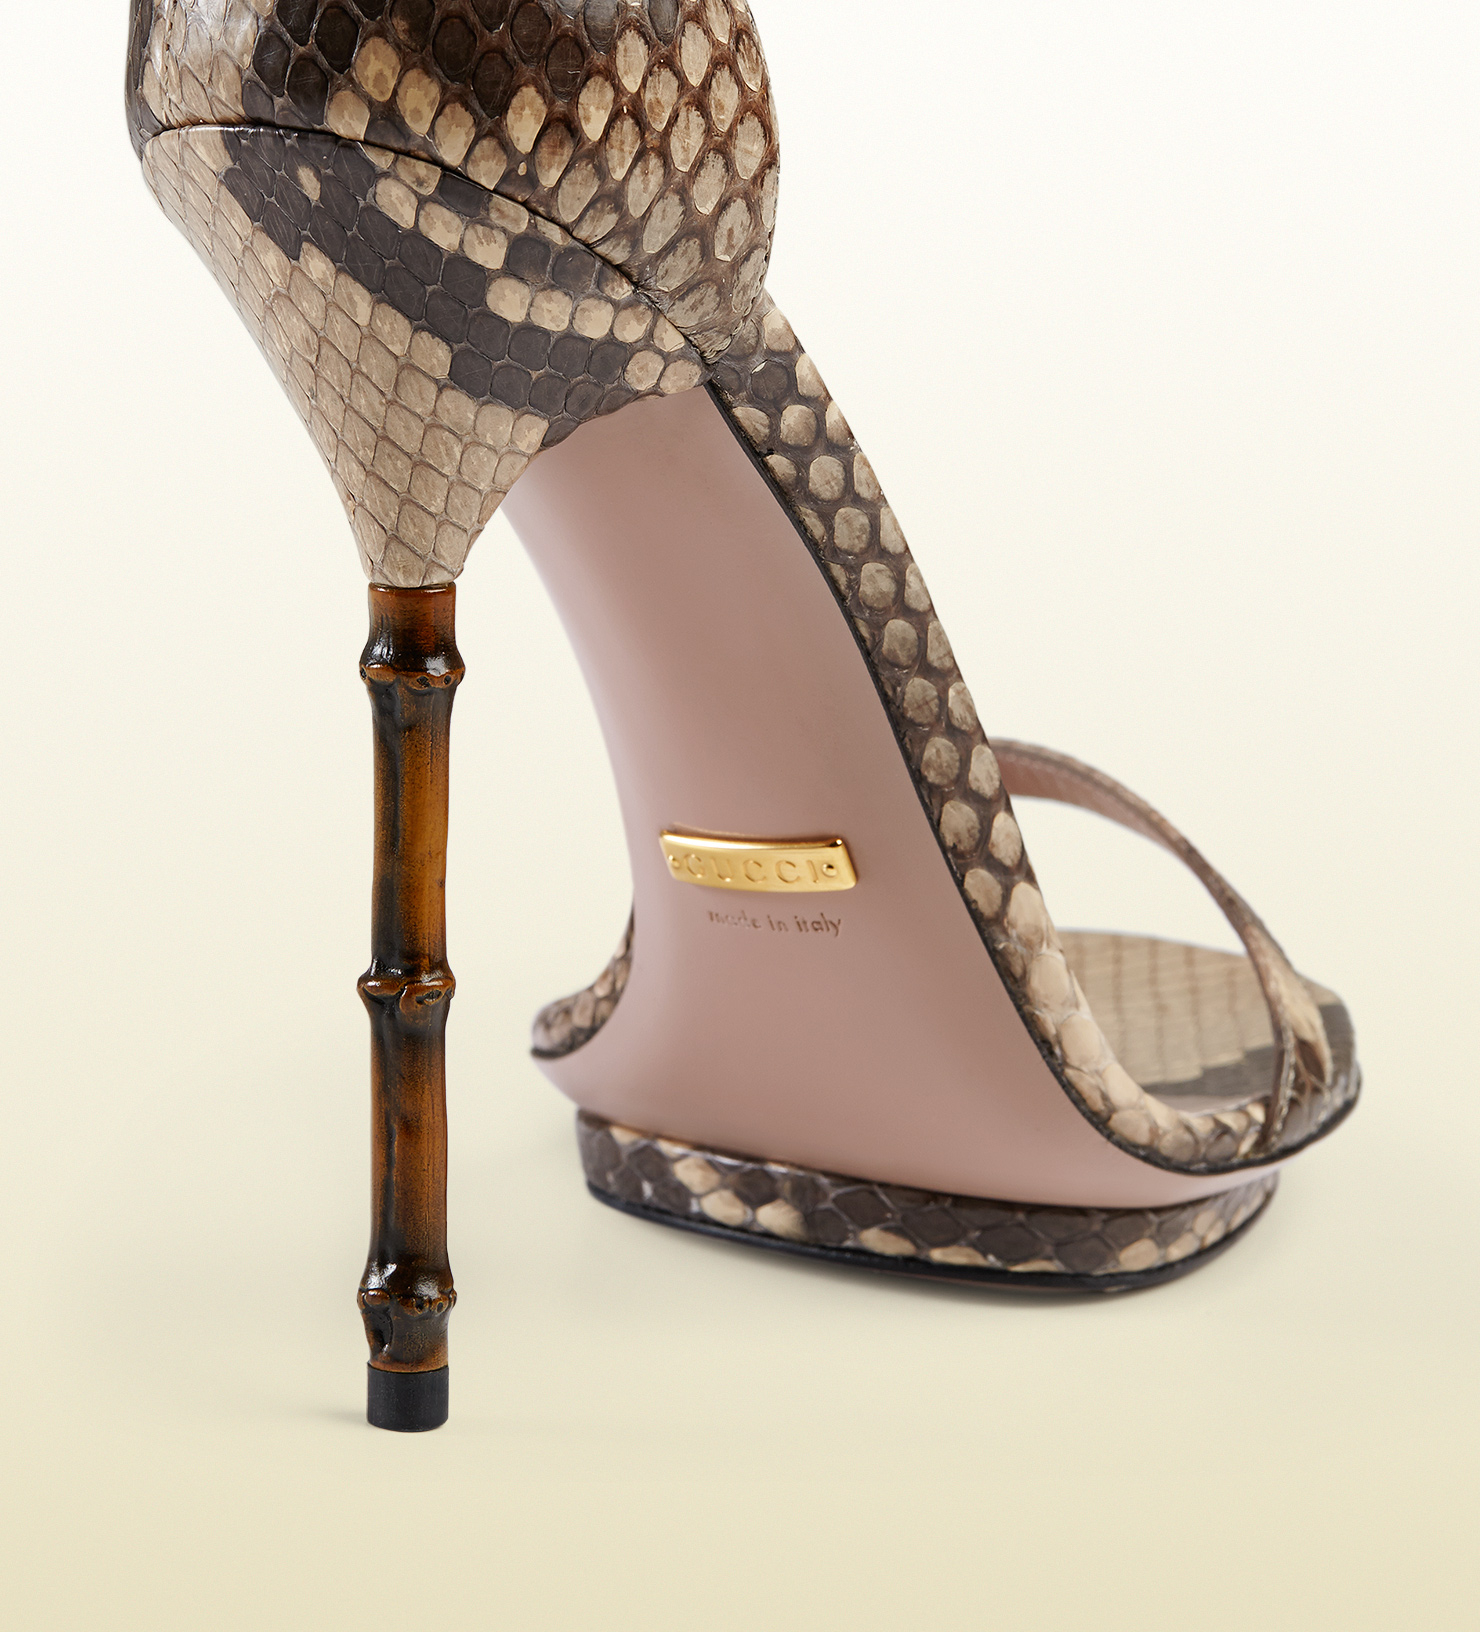 Gucci Shoes Bamboo Heels